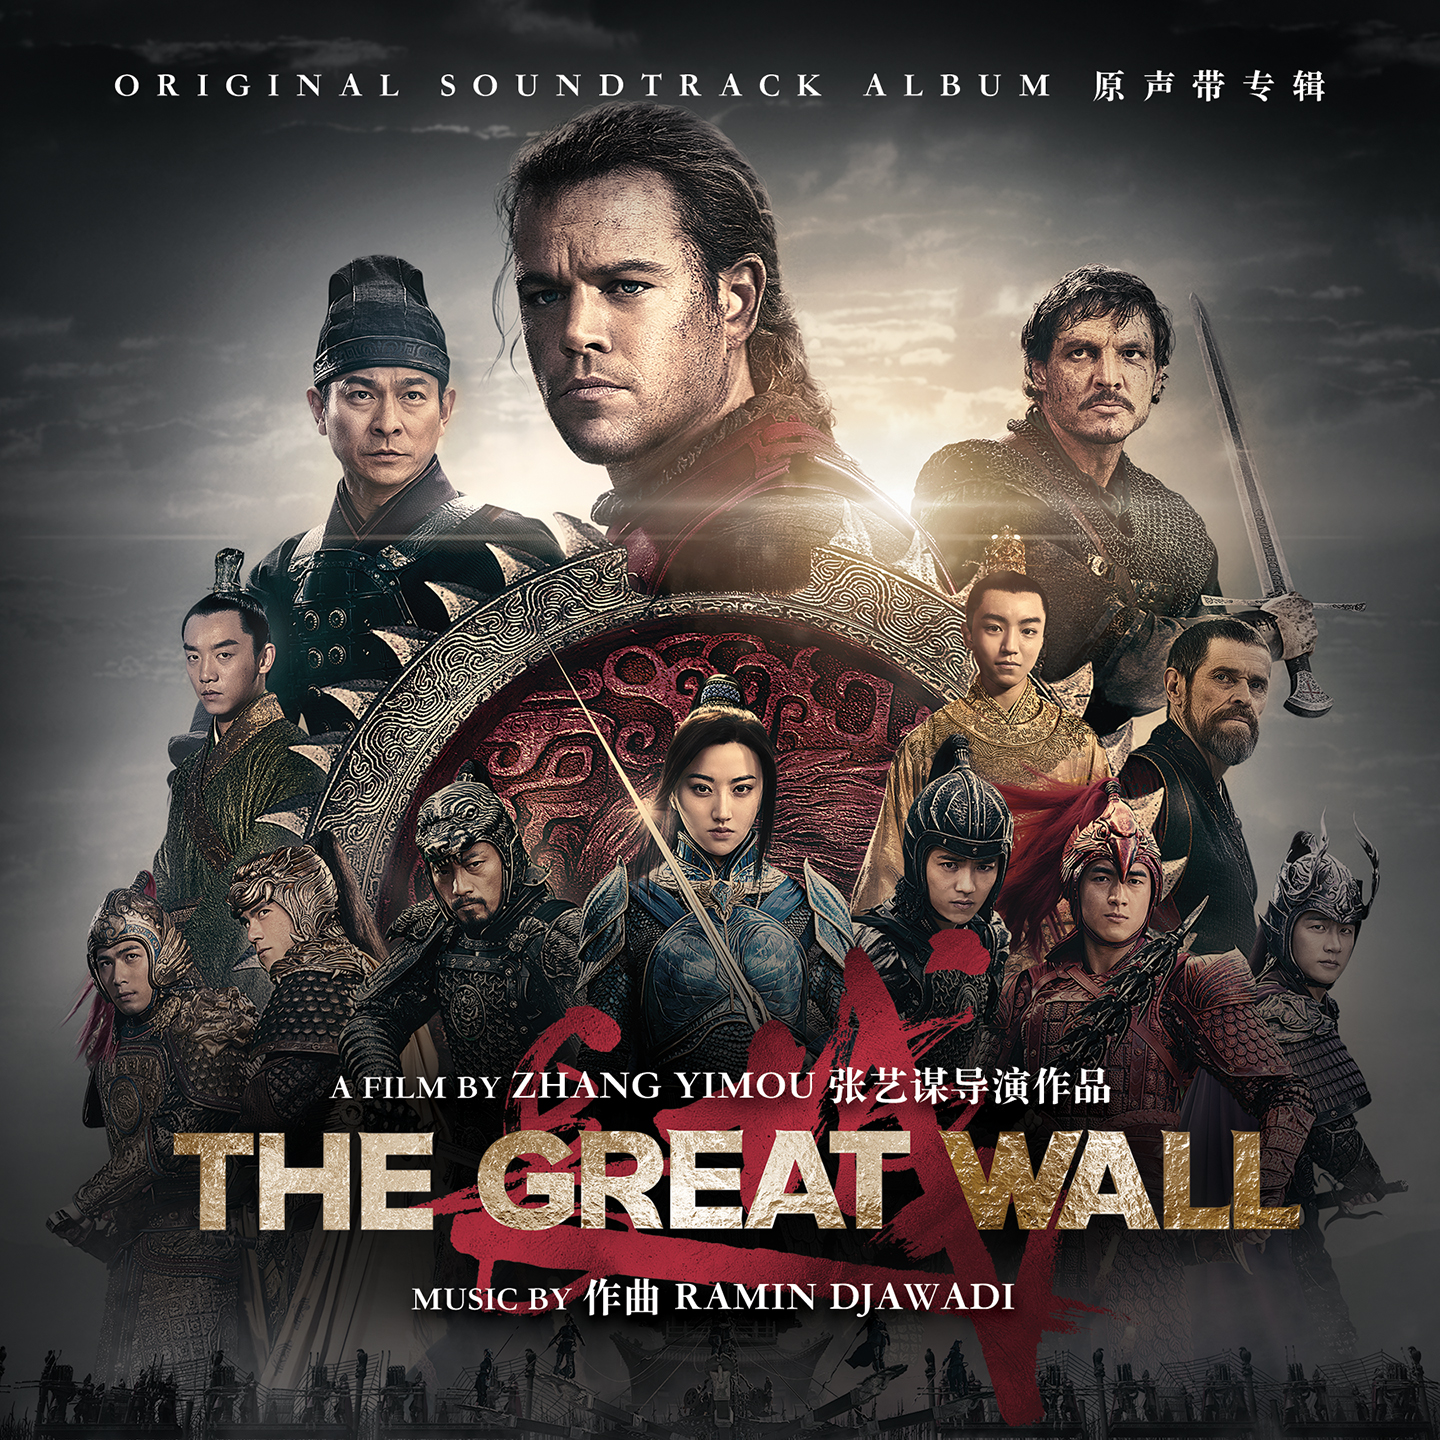 00-ramin_djawadi-the_great_wall_(original_soundtrack_album)-web-cpop-2016-cover-tosk.jpg